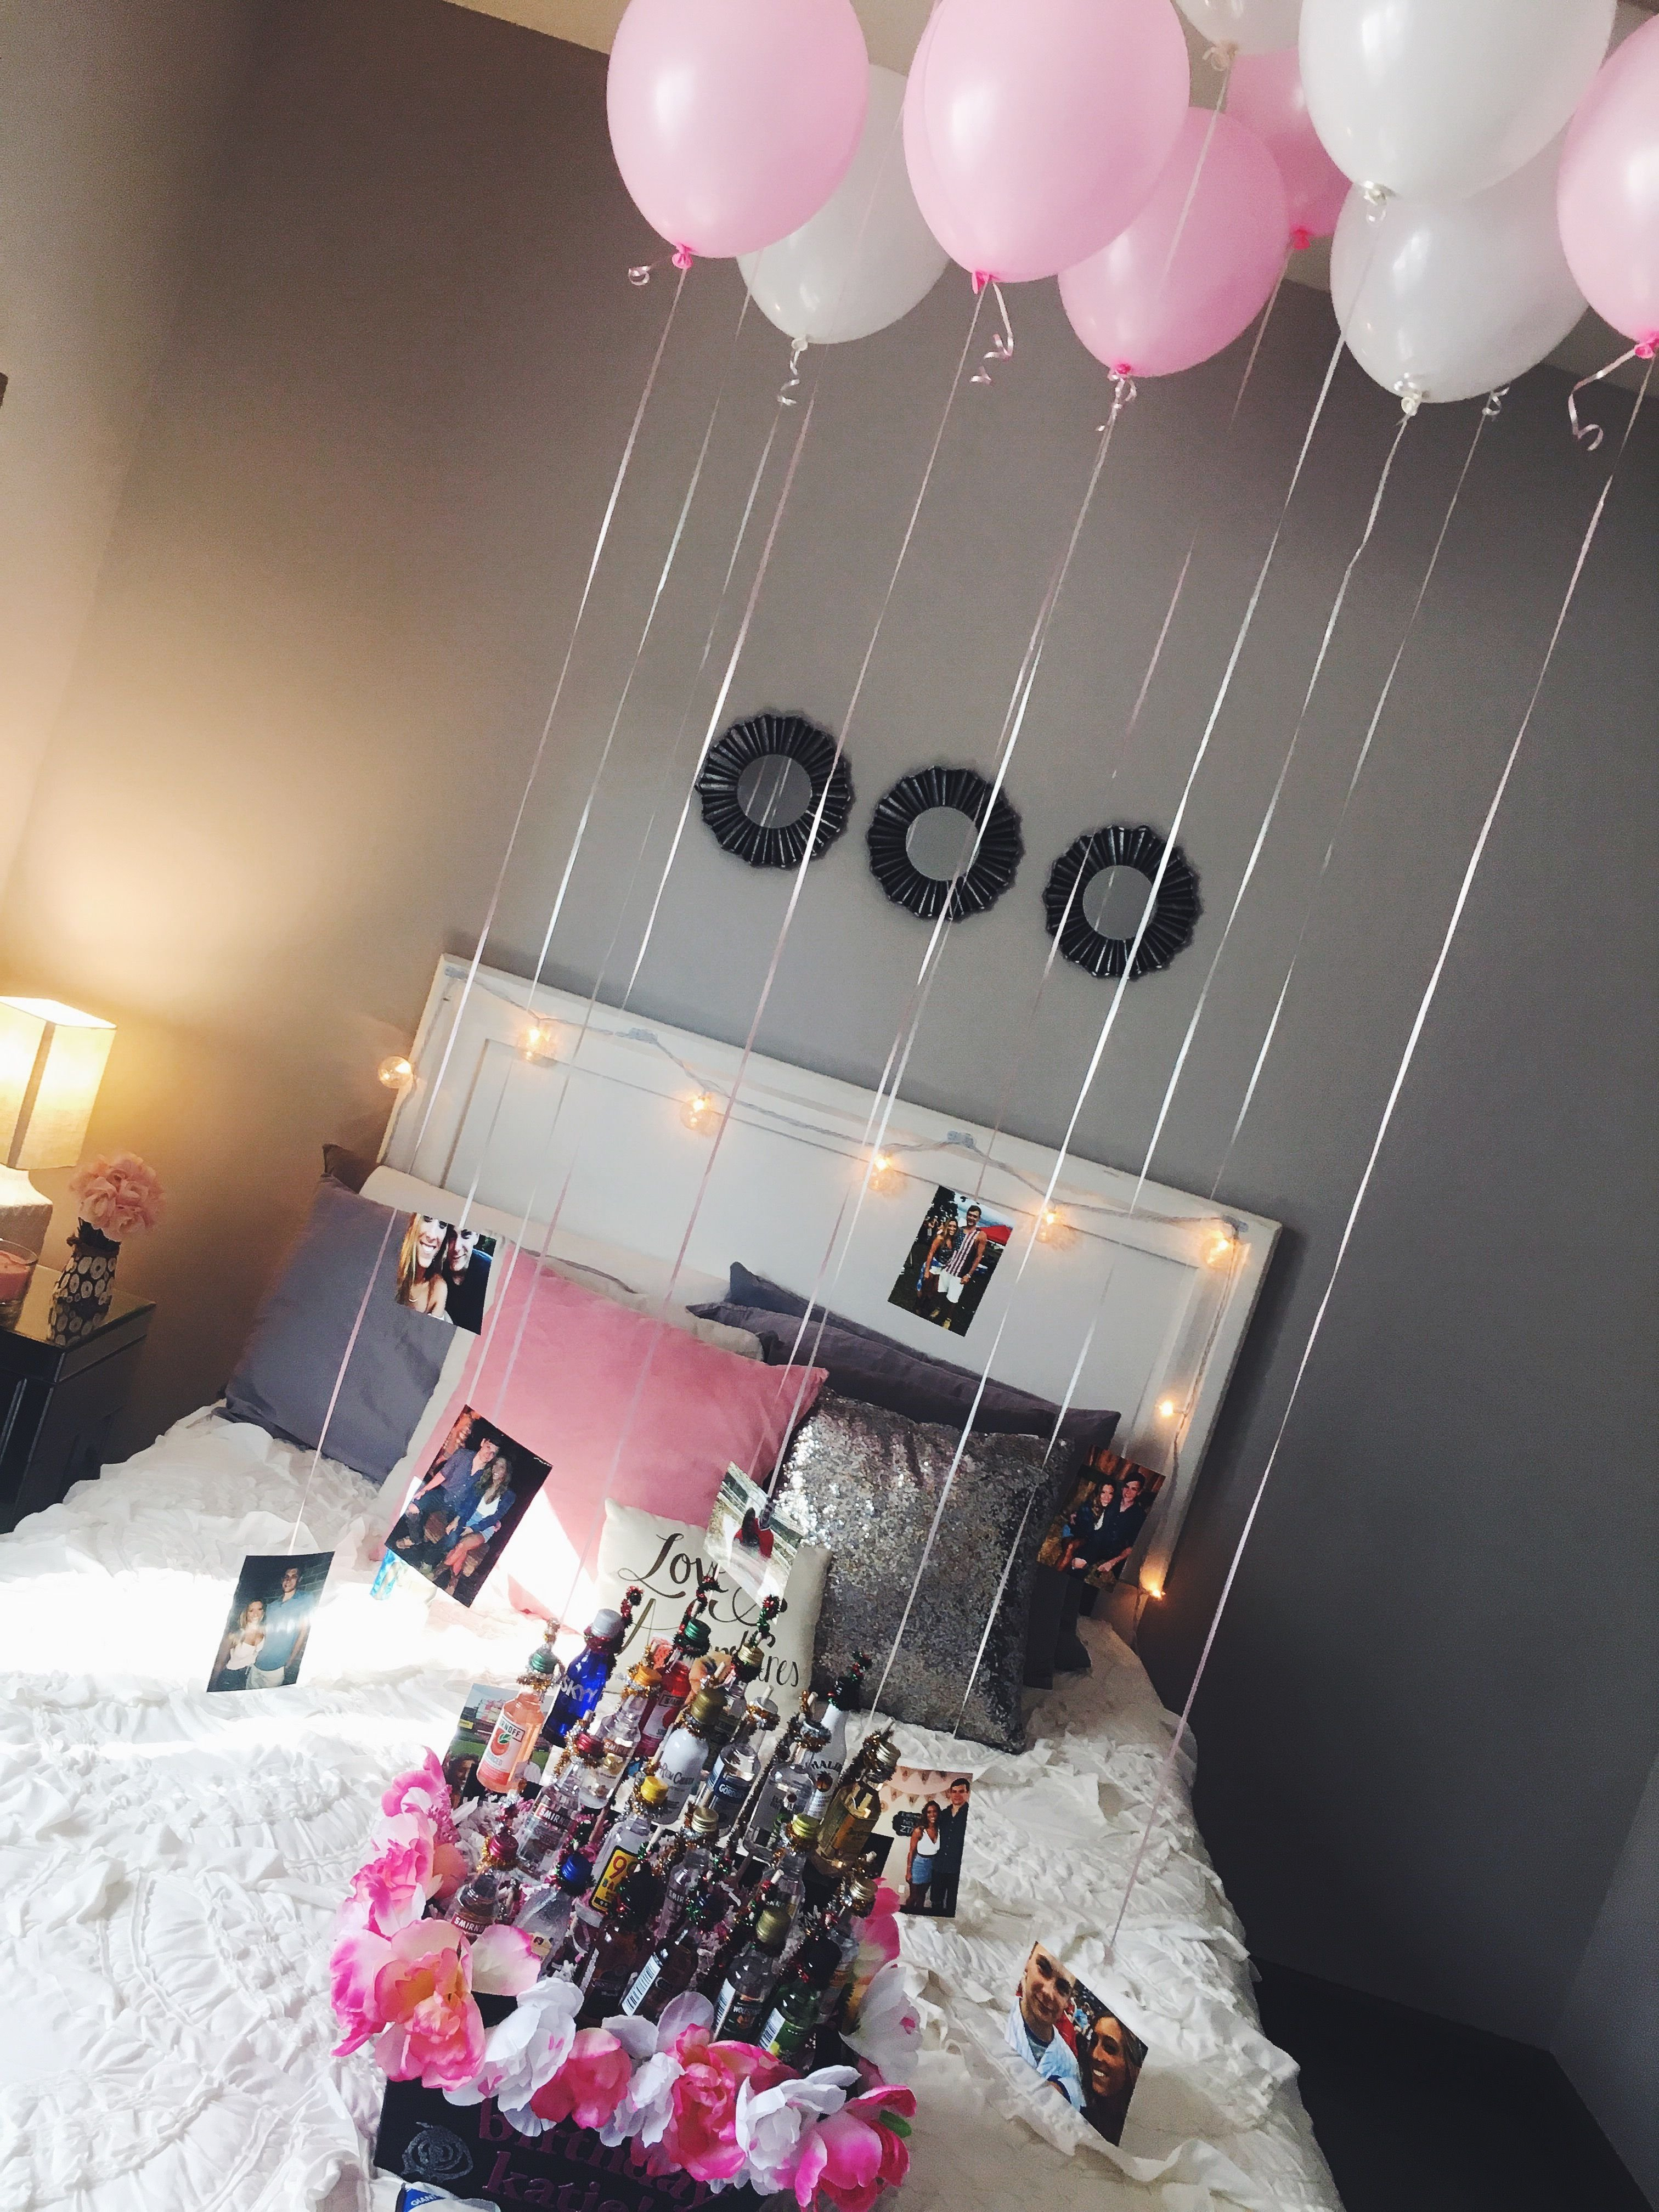 10 Lovable Cute Birthday Gift Ideas For Girlfriend Easy And Decorations A Friend Or